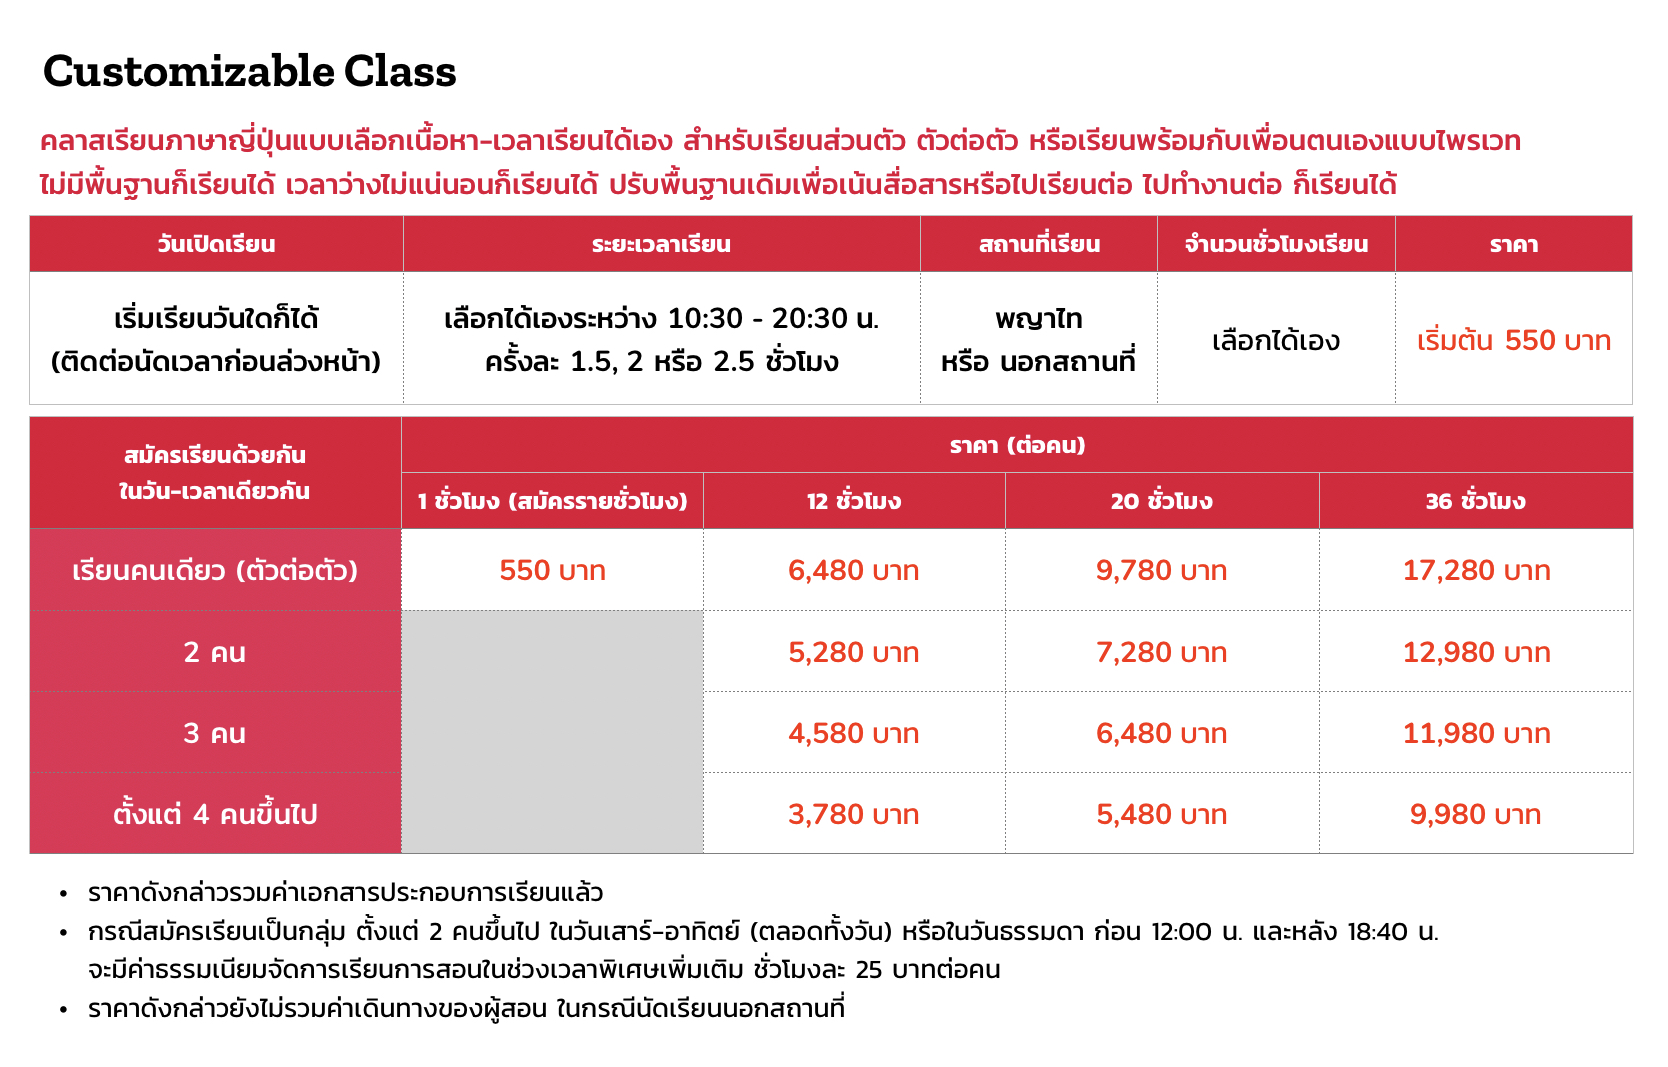 ราคา Private Japanese - Customizable Class by Pittarii